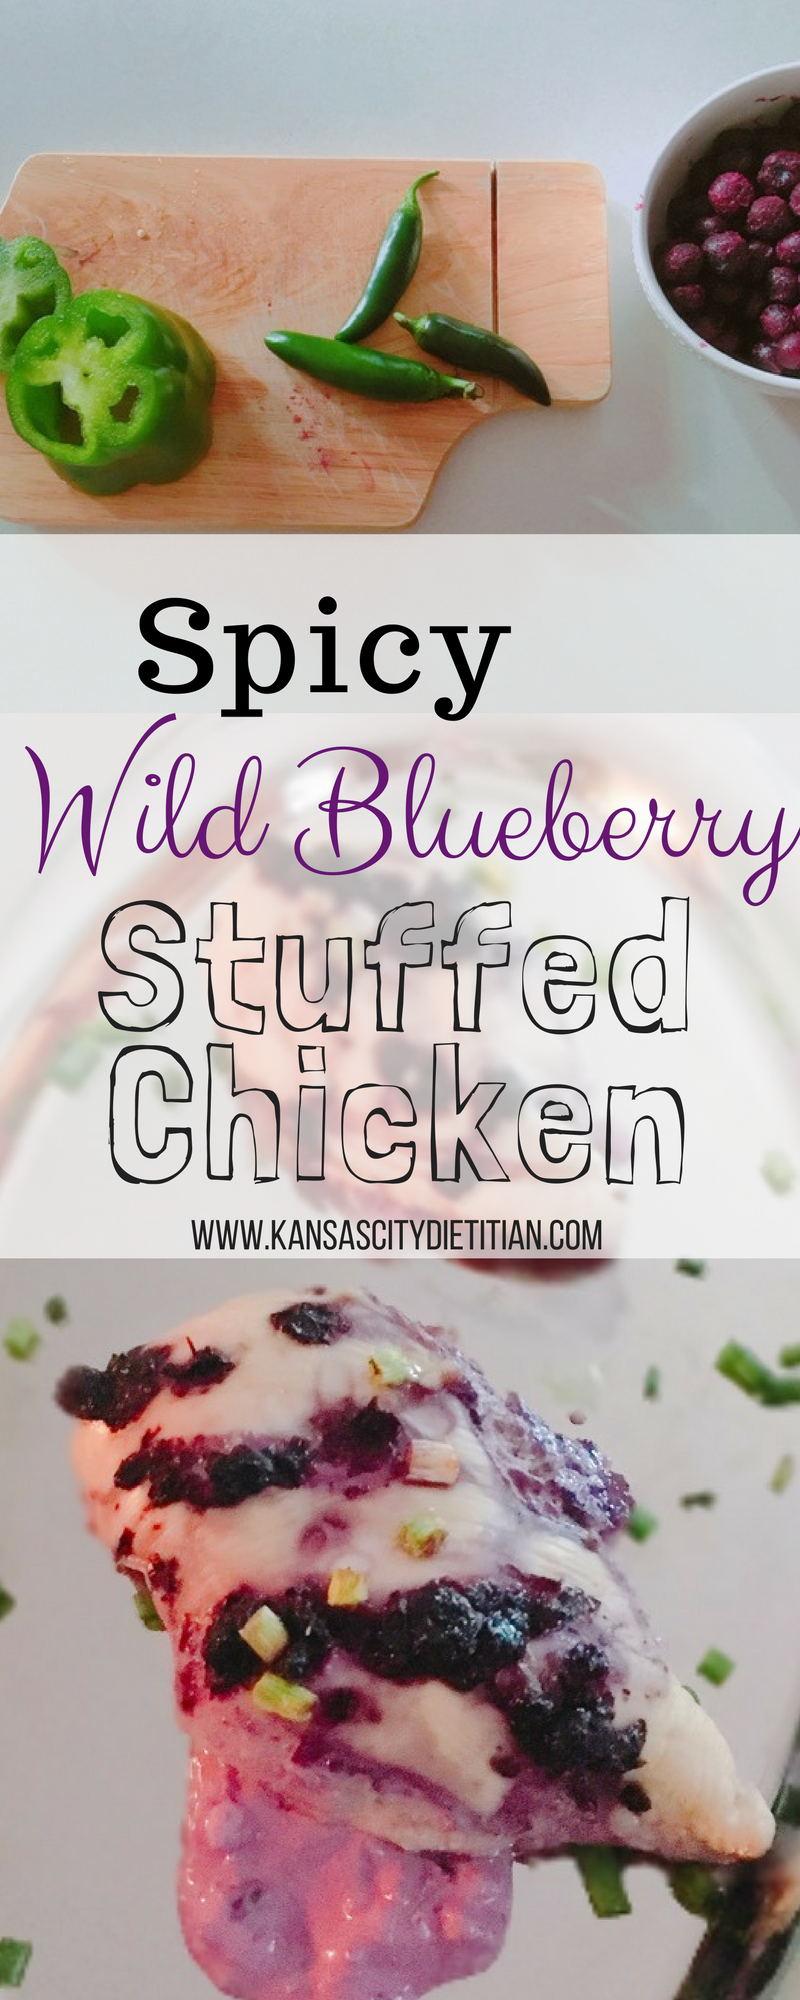 Spicy Wild Blueberry Stuffed chicken